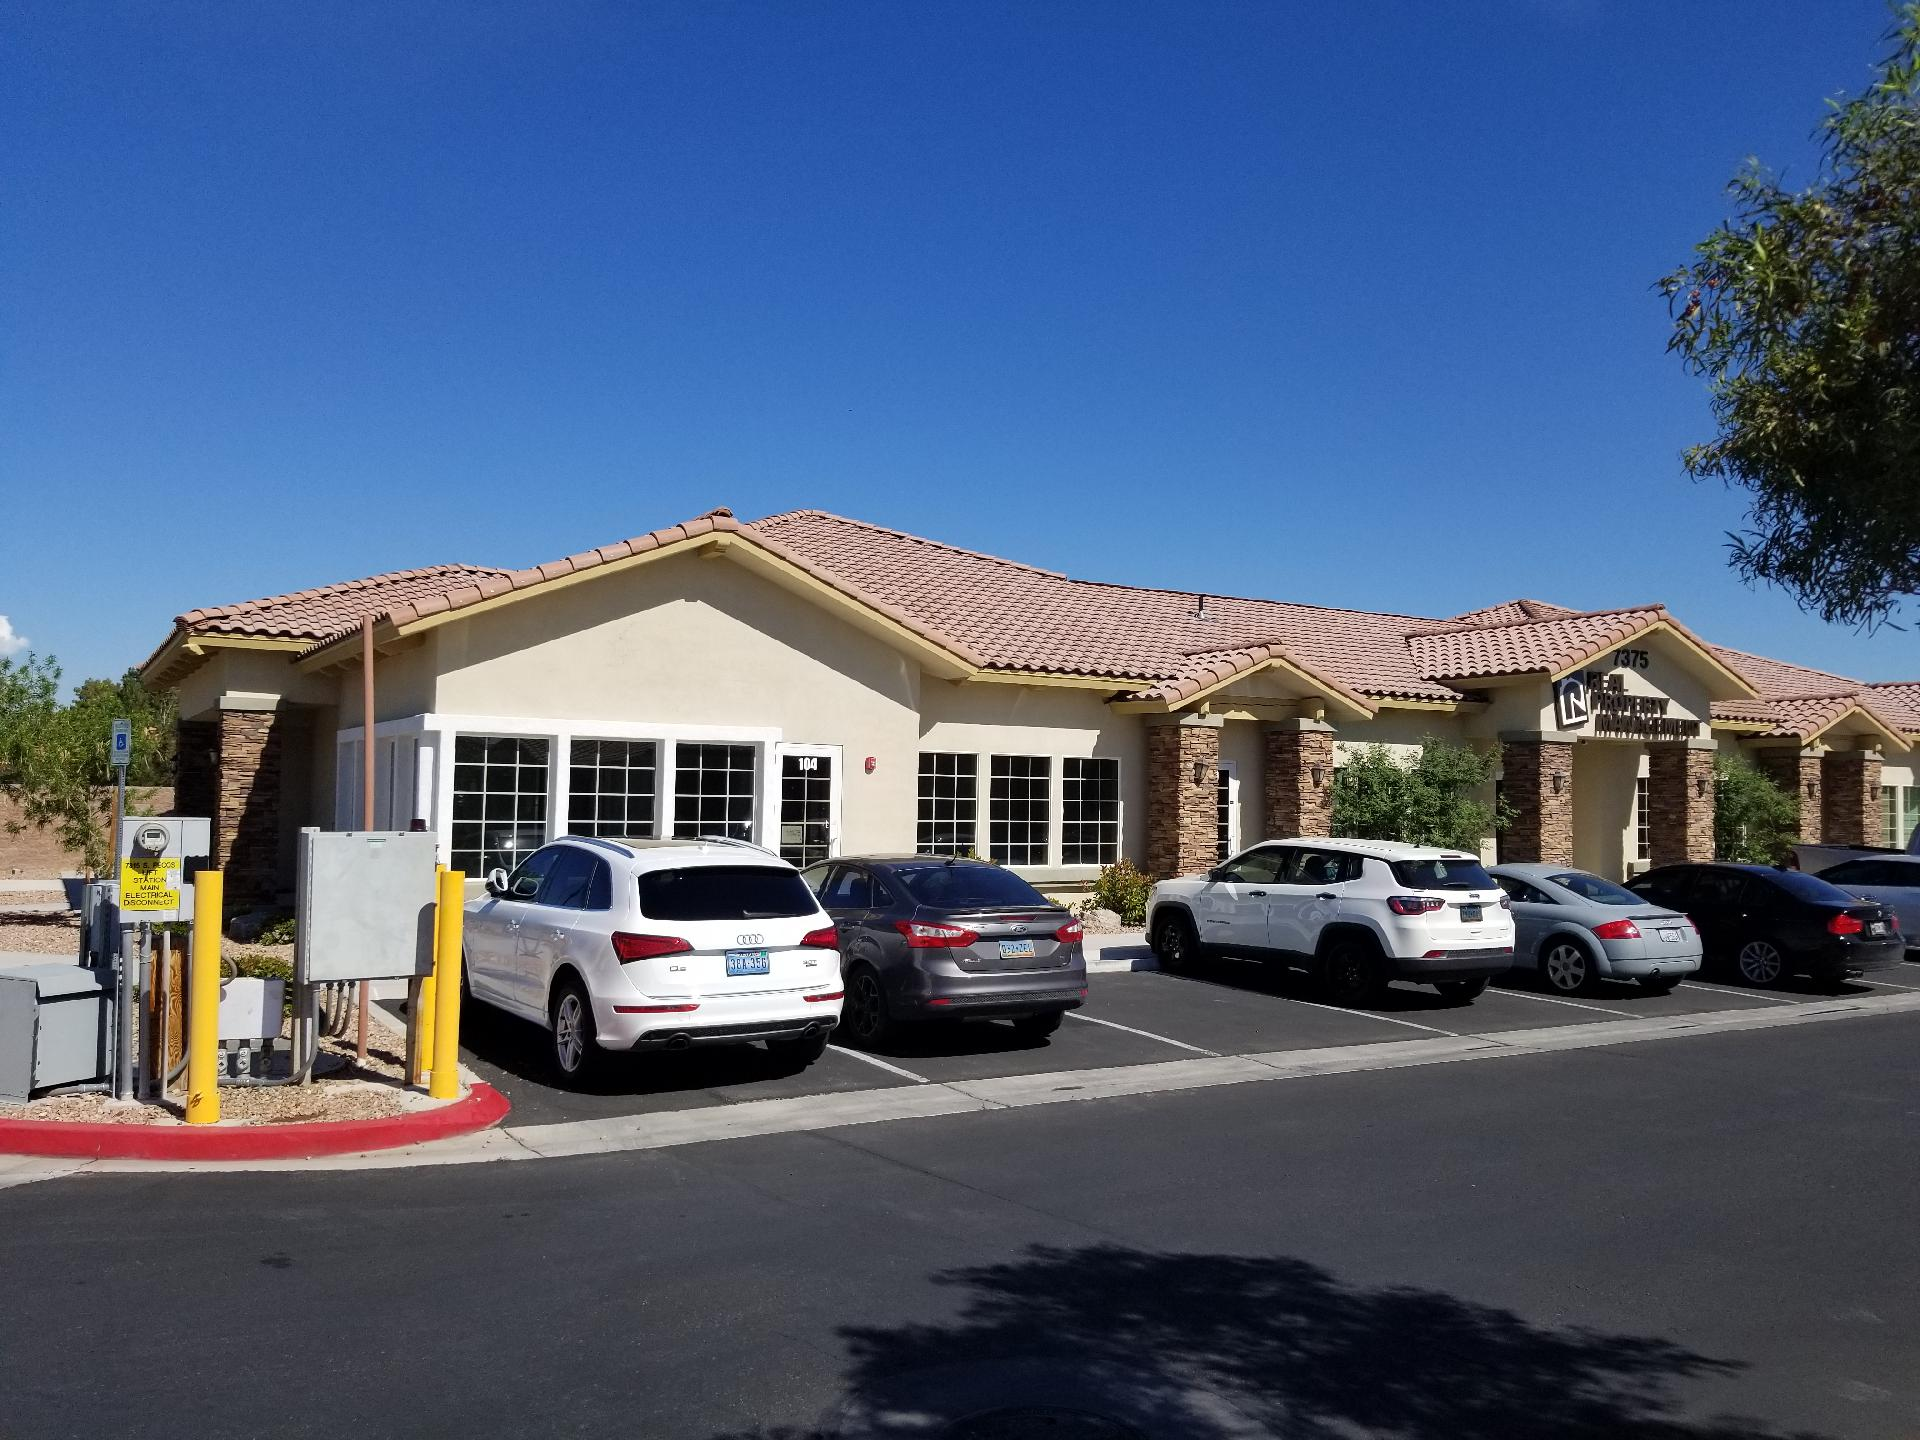 7375 S. Pecos Rd, Suite 104 Property Photo - Las Vegas , NV real estate listing